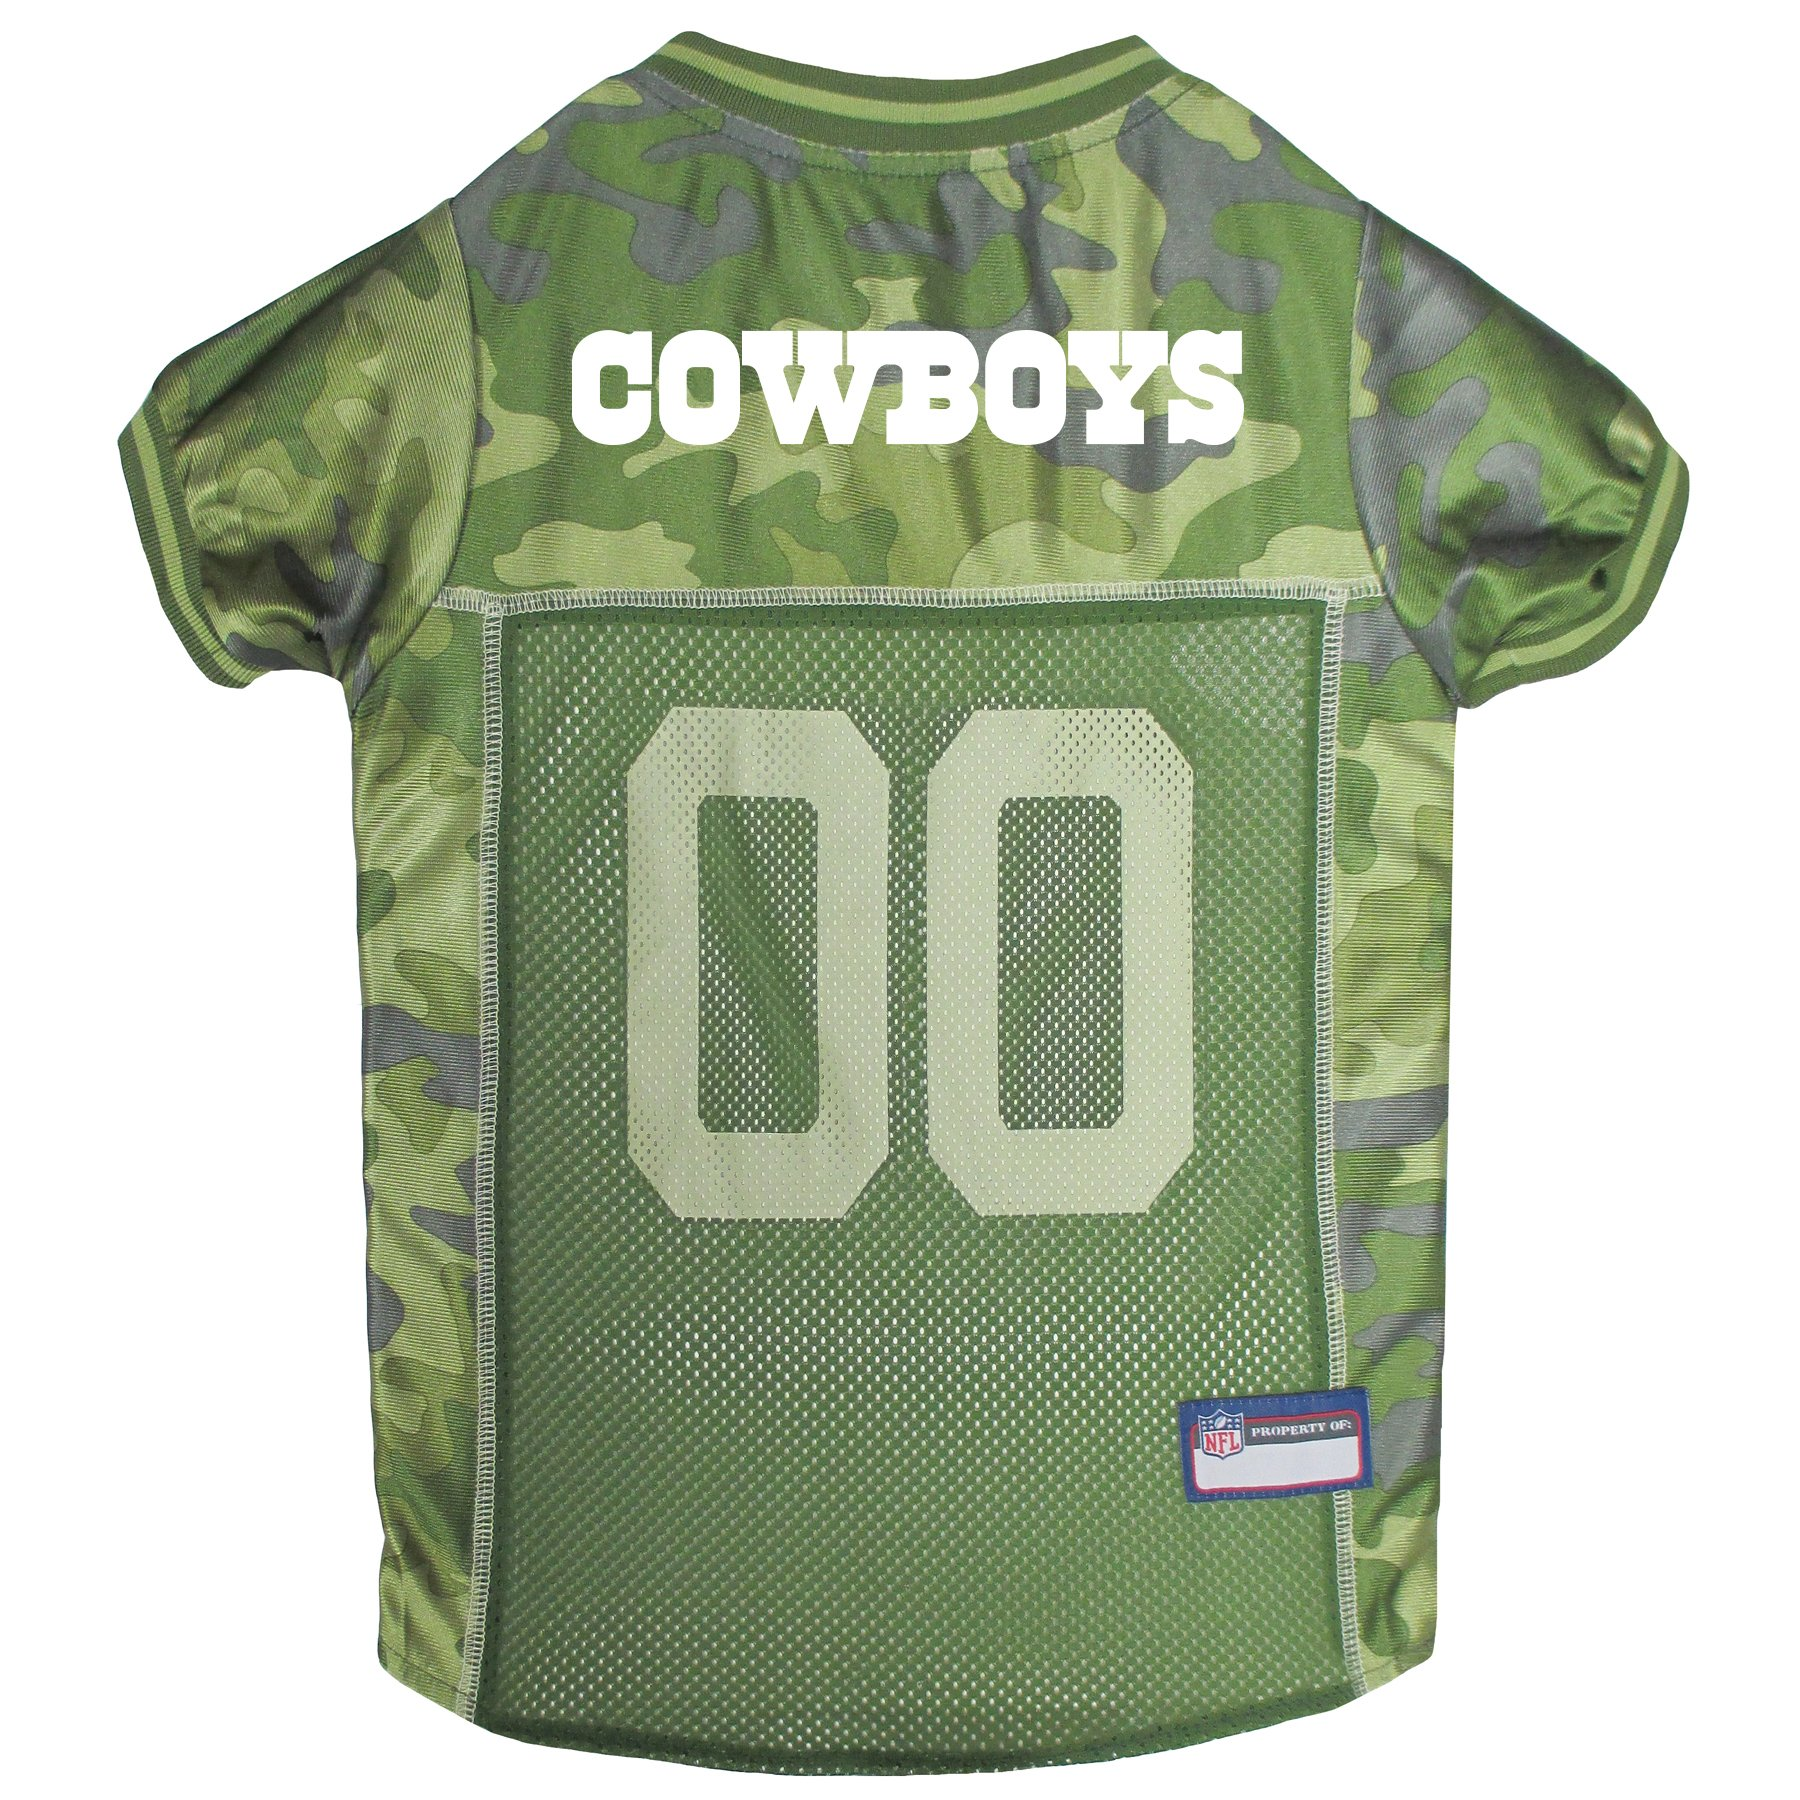 Pets First NFL DALLAS COWBOYS CAMOUFLAGE DOG JERSEY, Medium. - CAMO PET Jersey available in 5 sizes & 32 NFL TEAMS. Hunting Dog Shirt